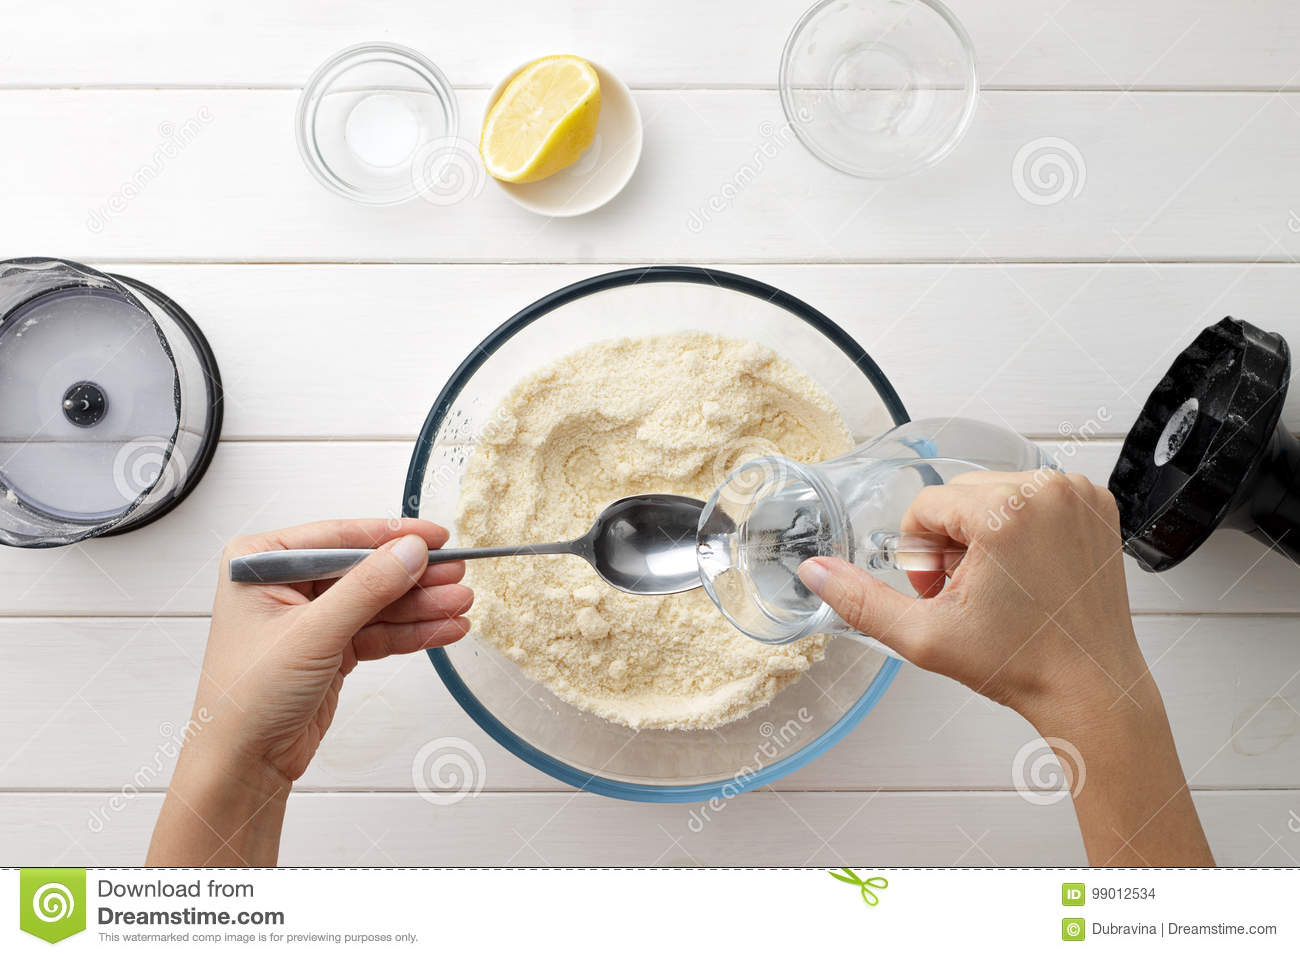 Step by step recipe galette or pie with nectarines female hands step by step recipe galette or pie with nectarines female hands pour water from a jug into spoon for dough cooking process top view forumfinder Gallery